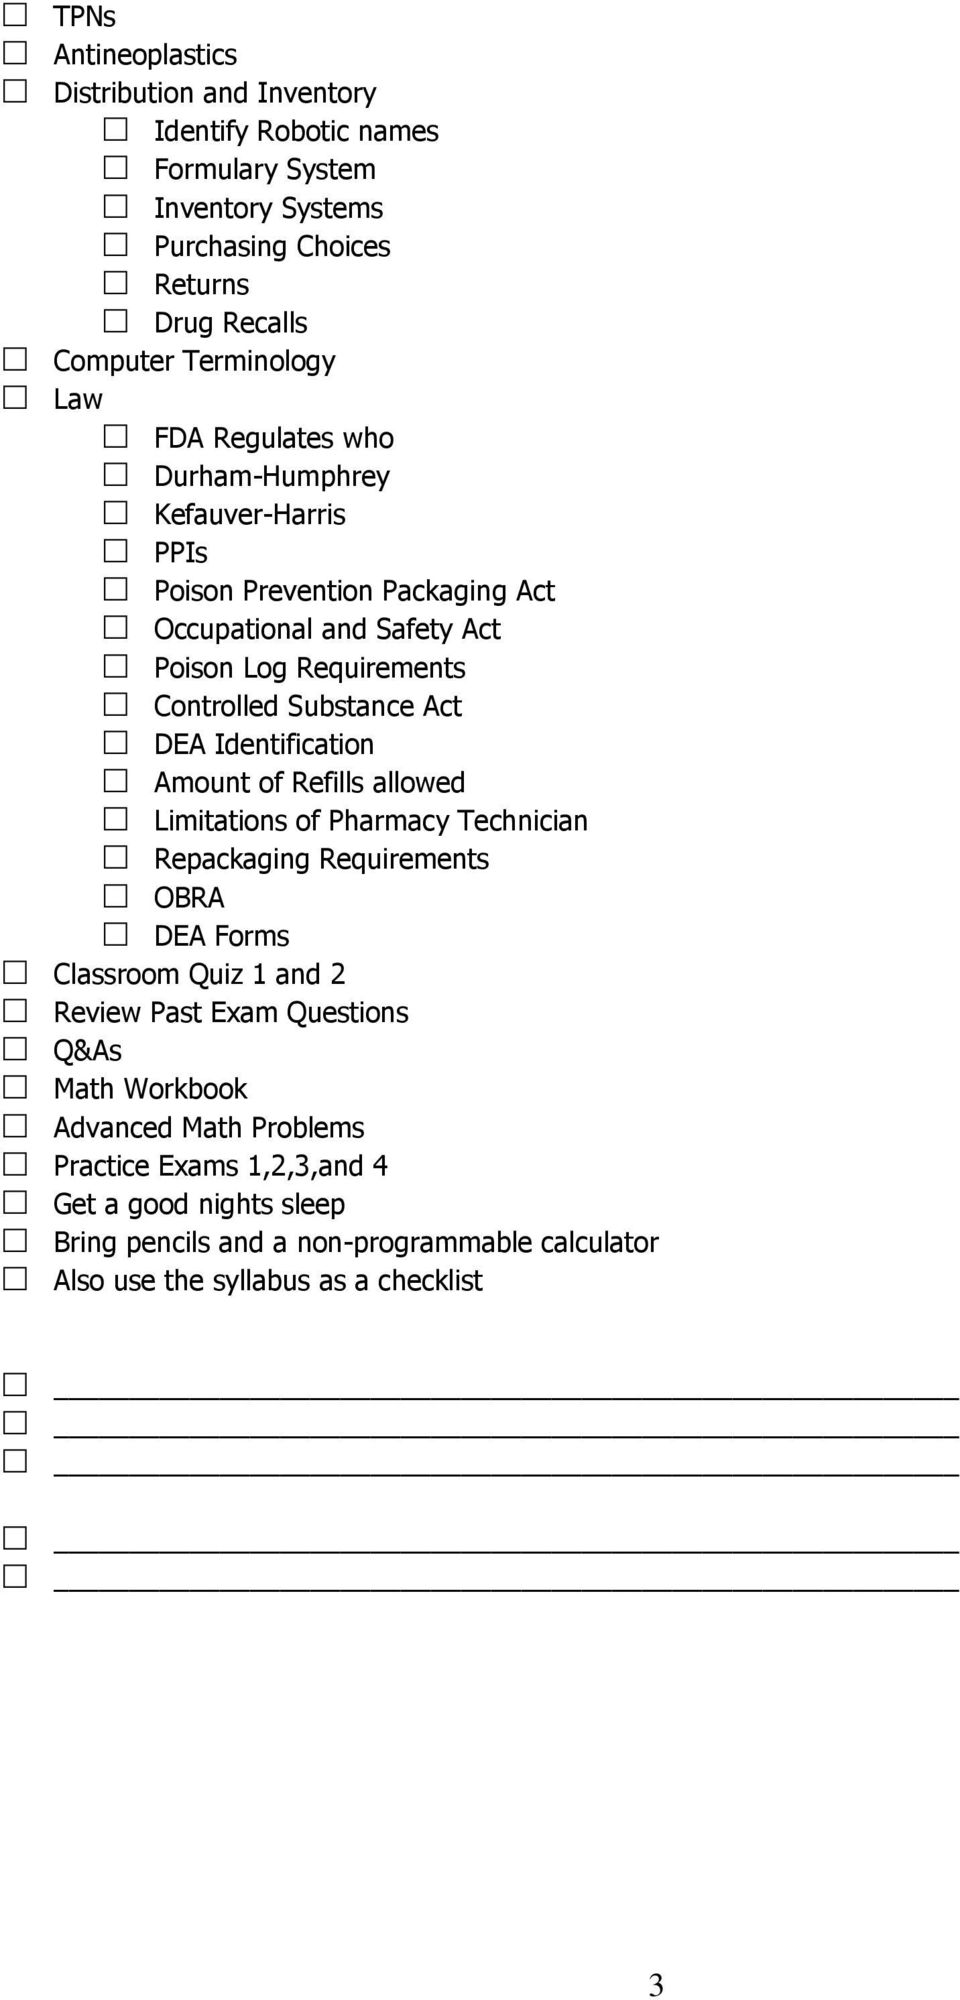 ancc certification exam content outline image mag